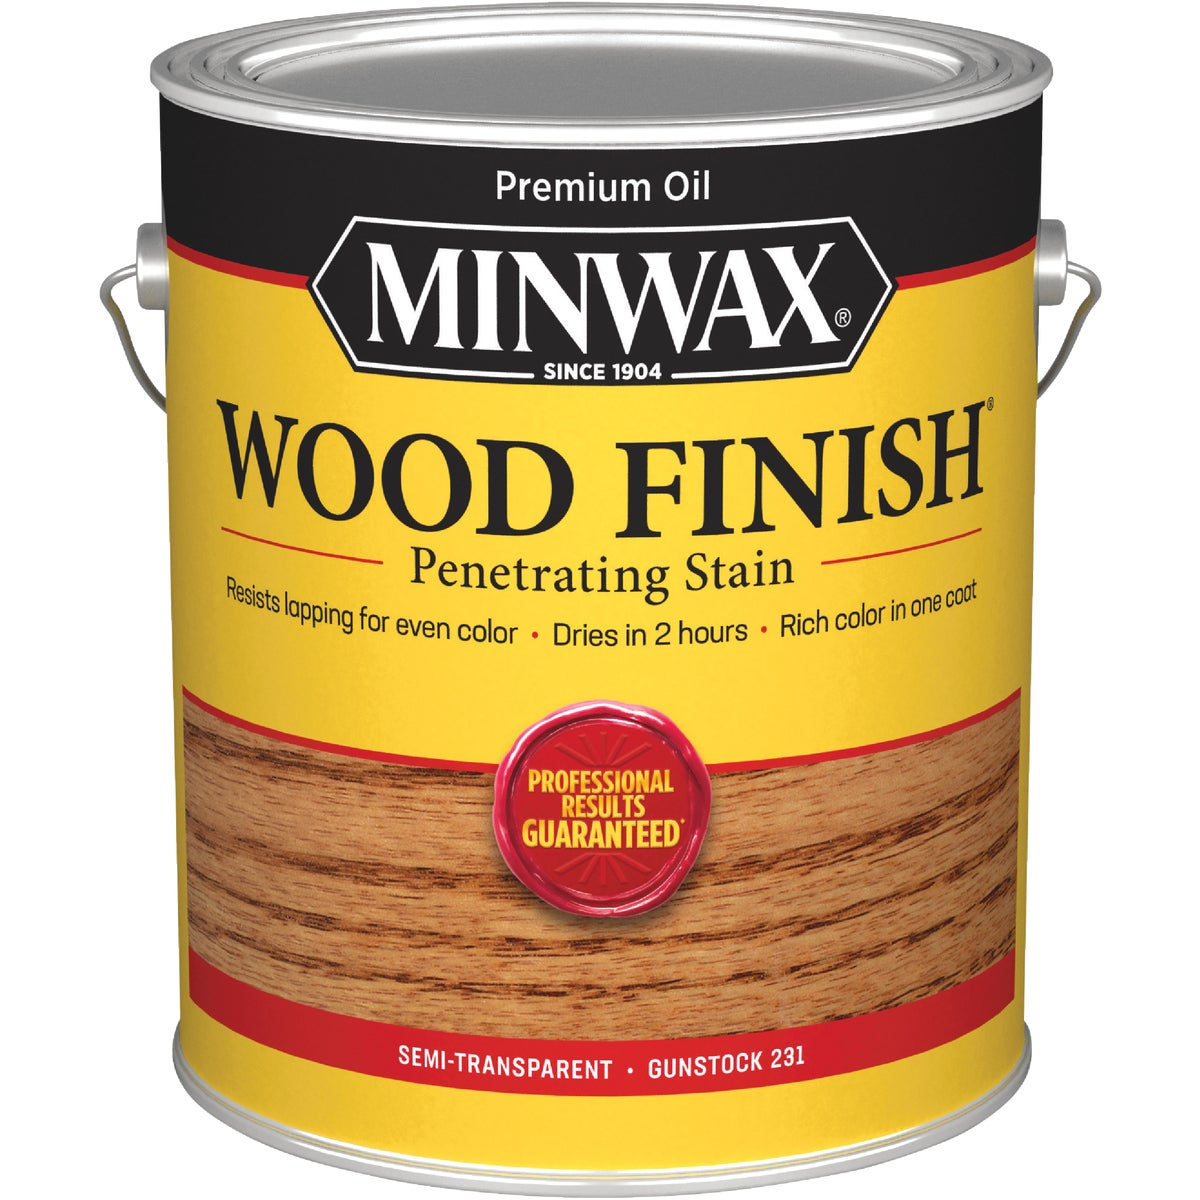 GUNSTOCK WOOD STAIN - 710450000 by Minwax Company